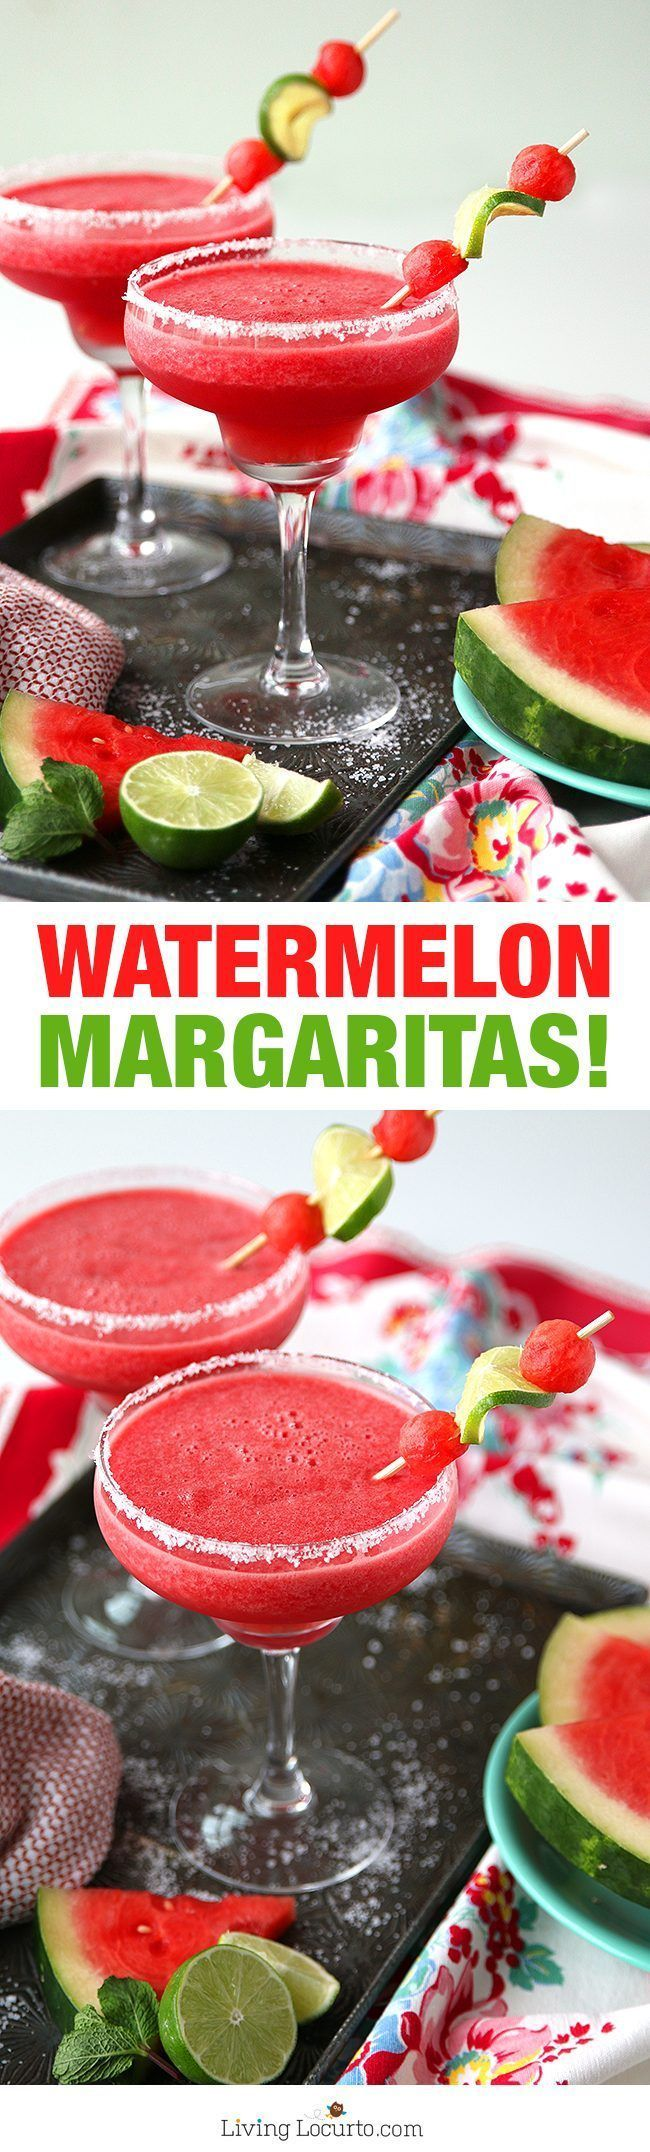 Easy Frozen Watermelon Margaritas! This is THE BEST Margarita Recipe perfect for any party. A refreshing cocktail for a hot summer day. http://LivingLocurto.com